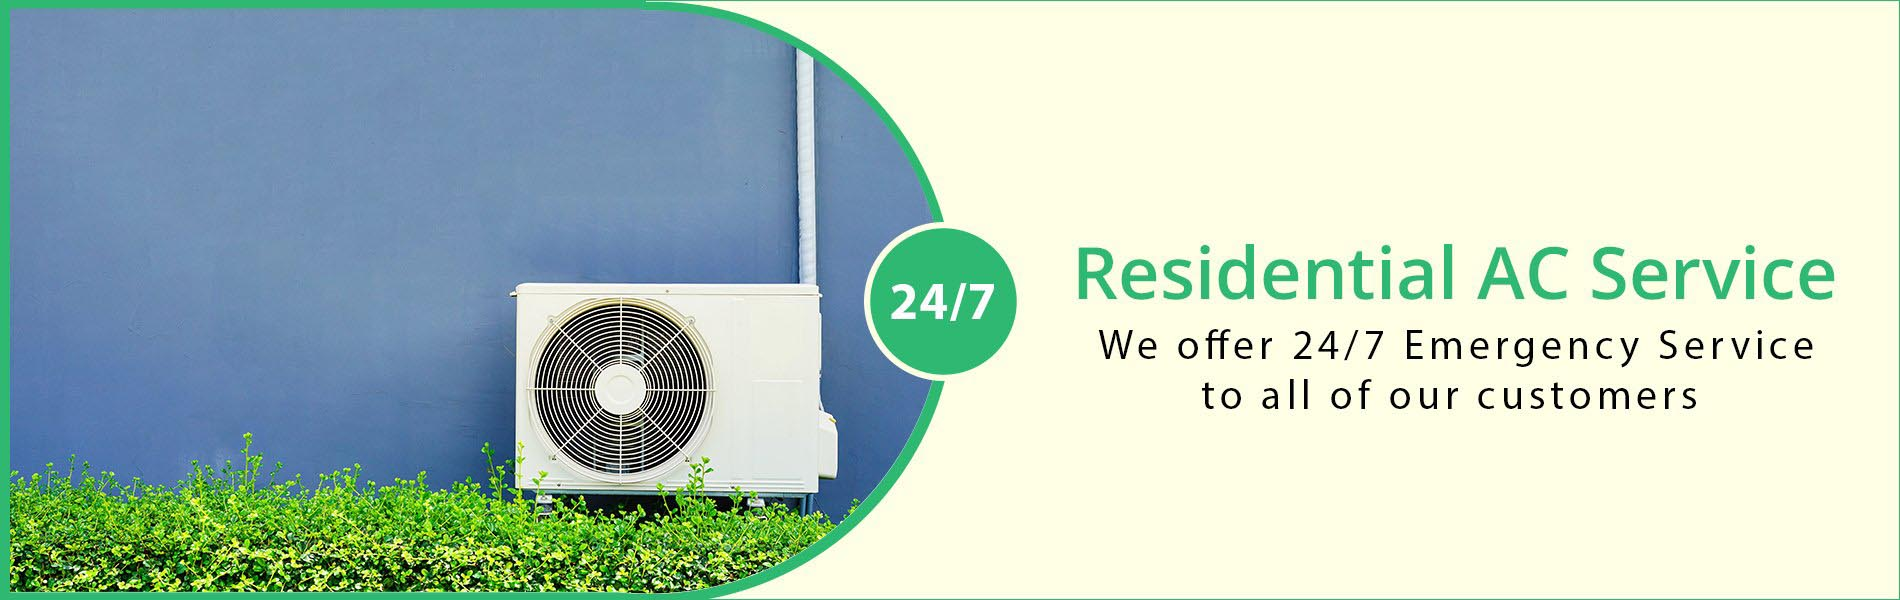 Deerfield Beach AC Expert, Deerfield Beach, FL 954-289-1767